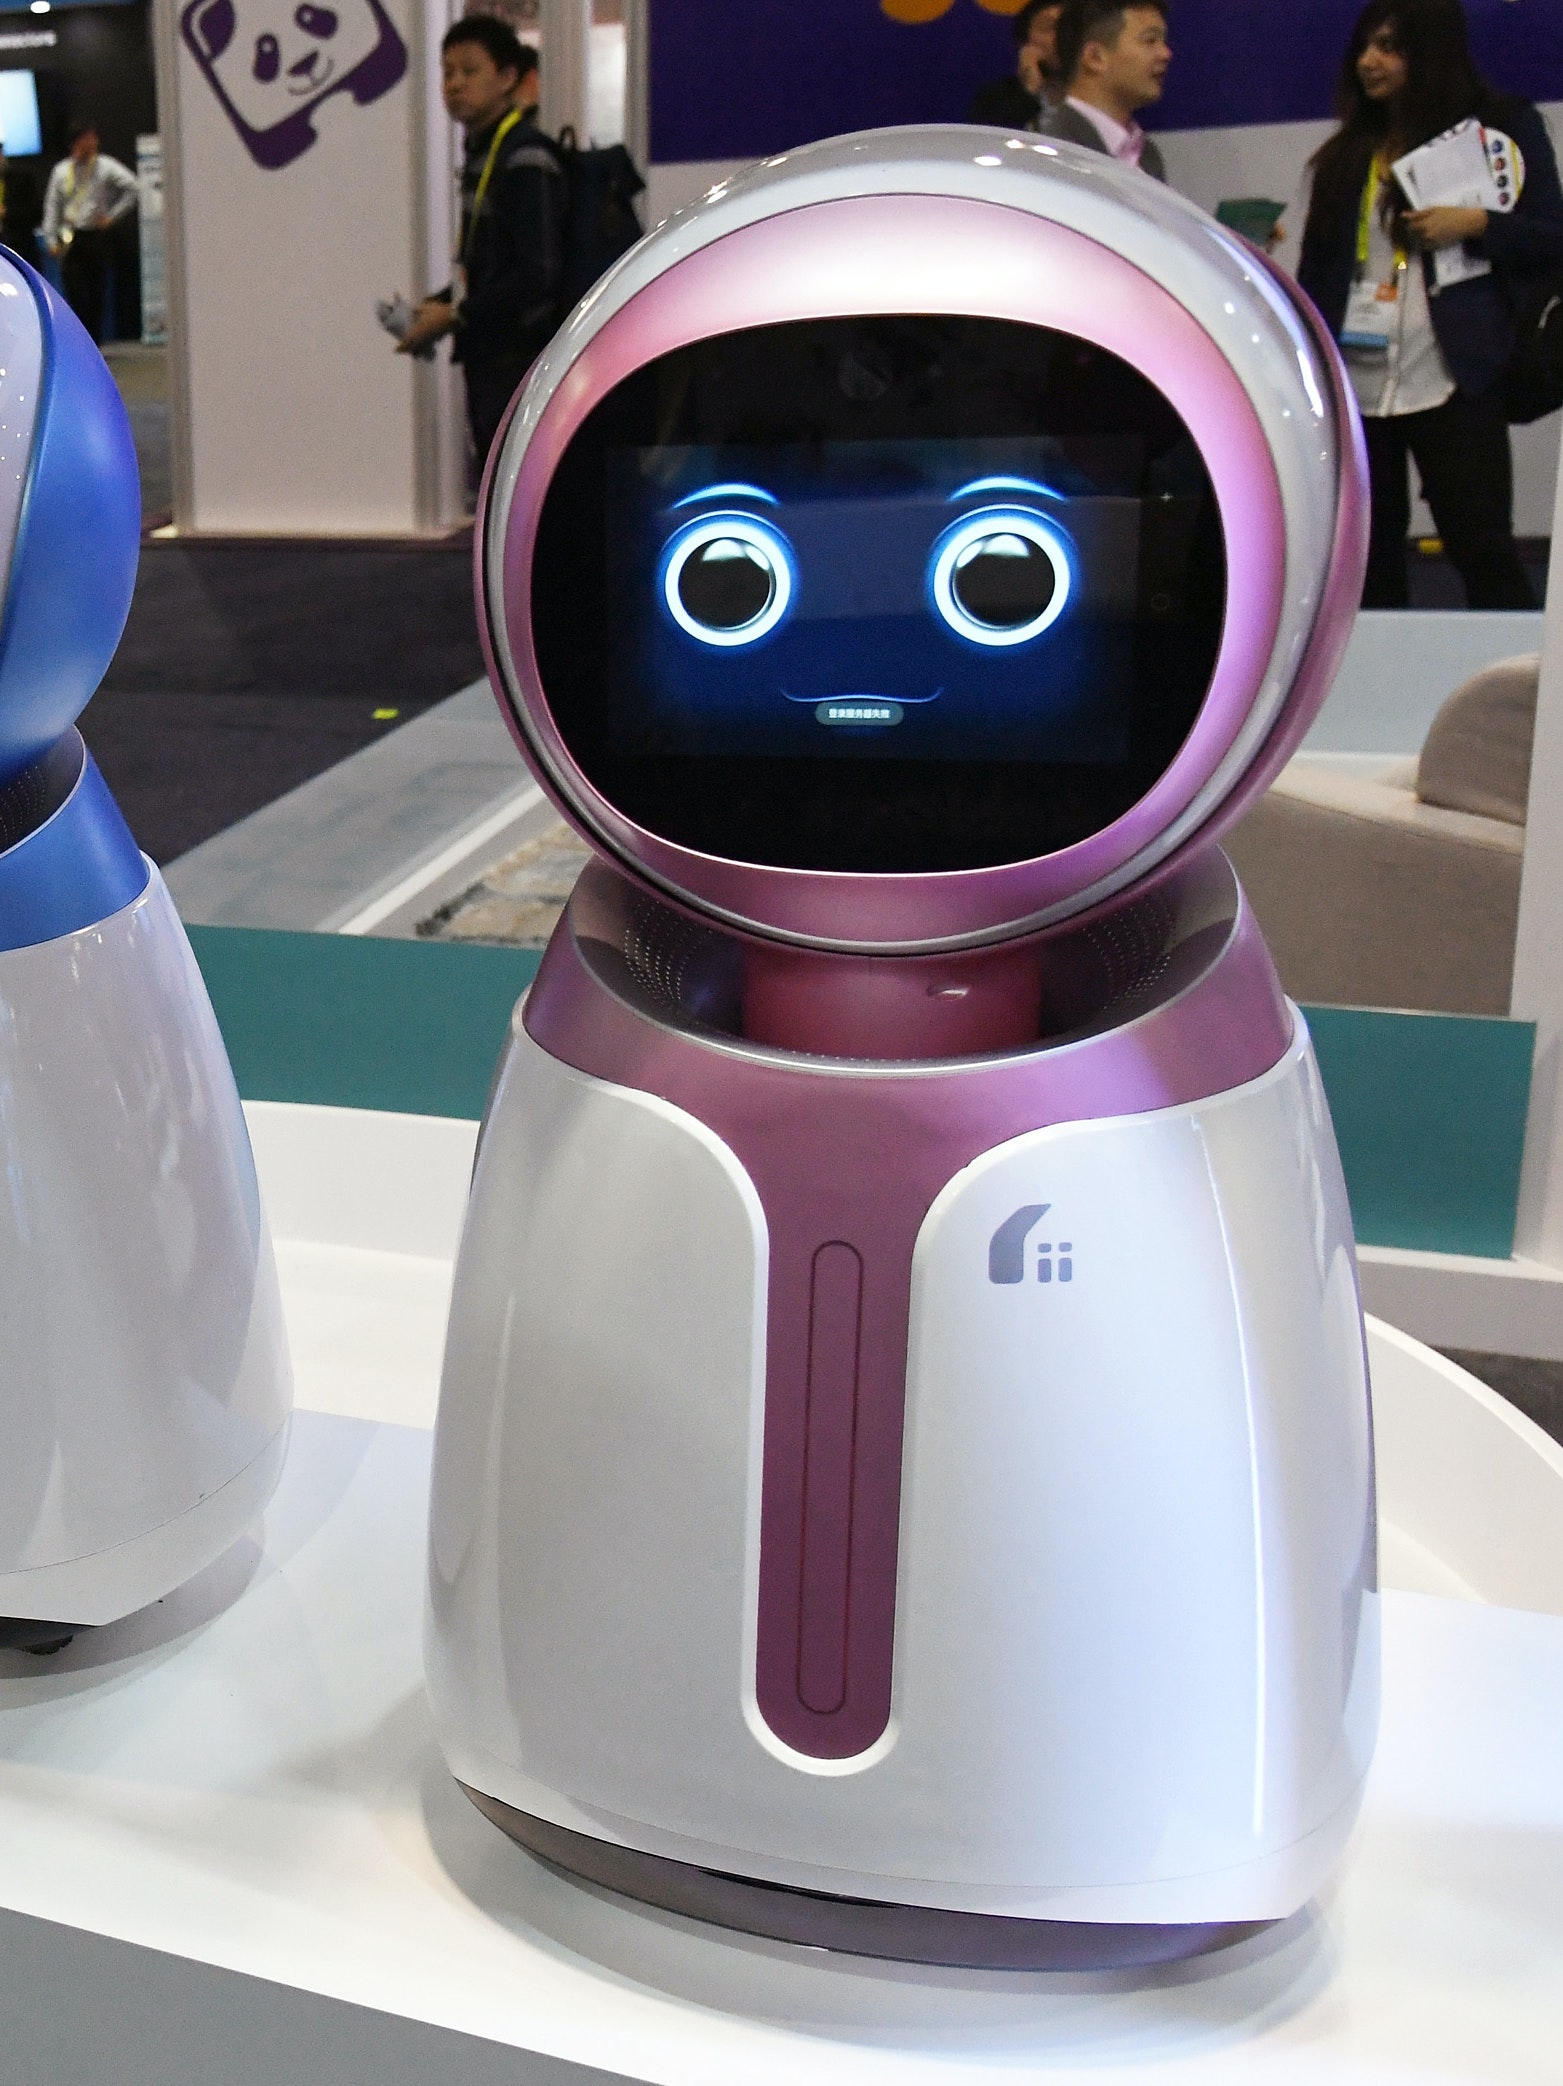 LAS VEGAS, NV - JANUARY 05:  Prototype Kikoo autonomous robots for children by Hanwuji Intelligence are displayed at CES 2017 at the Sands Expo and Convention Center on January 5, 2017 in Las Vegas, Nevada. The USD 600 robot features facial recognition technology and is designed to be a companion to children when their parents are working. Using age-based interactive content, it can launch talks or songs actively and dance or play with children as well as automatically take photos and video using voice or app instruction. CES, the world's largest annual consumer technology trade show, runs through January 8 and features 3,800 exhibitors showing off their latest products and services to more than 165,000 attendees.  (Photo by Ethan Miller/Getty Images)